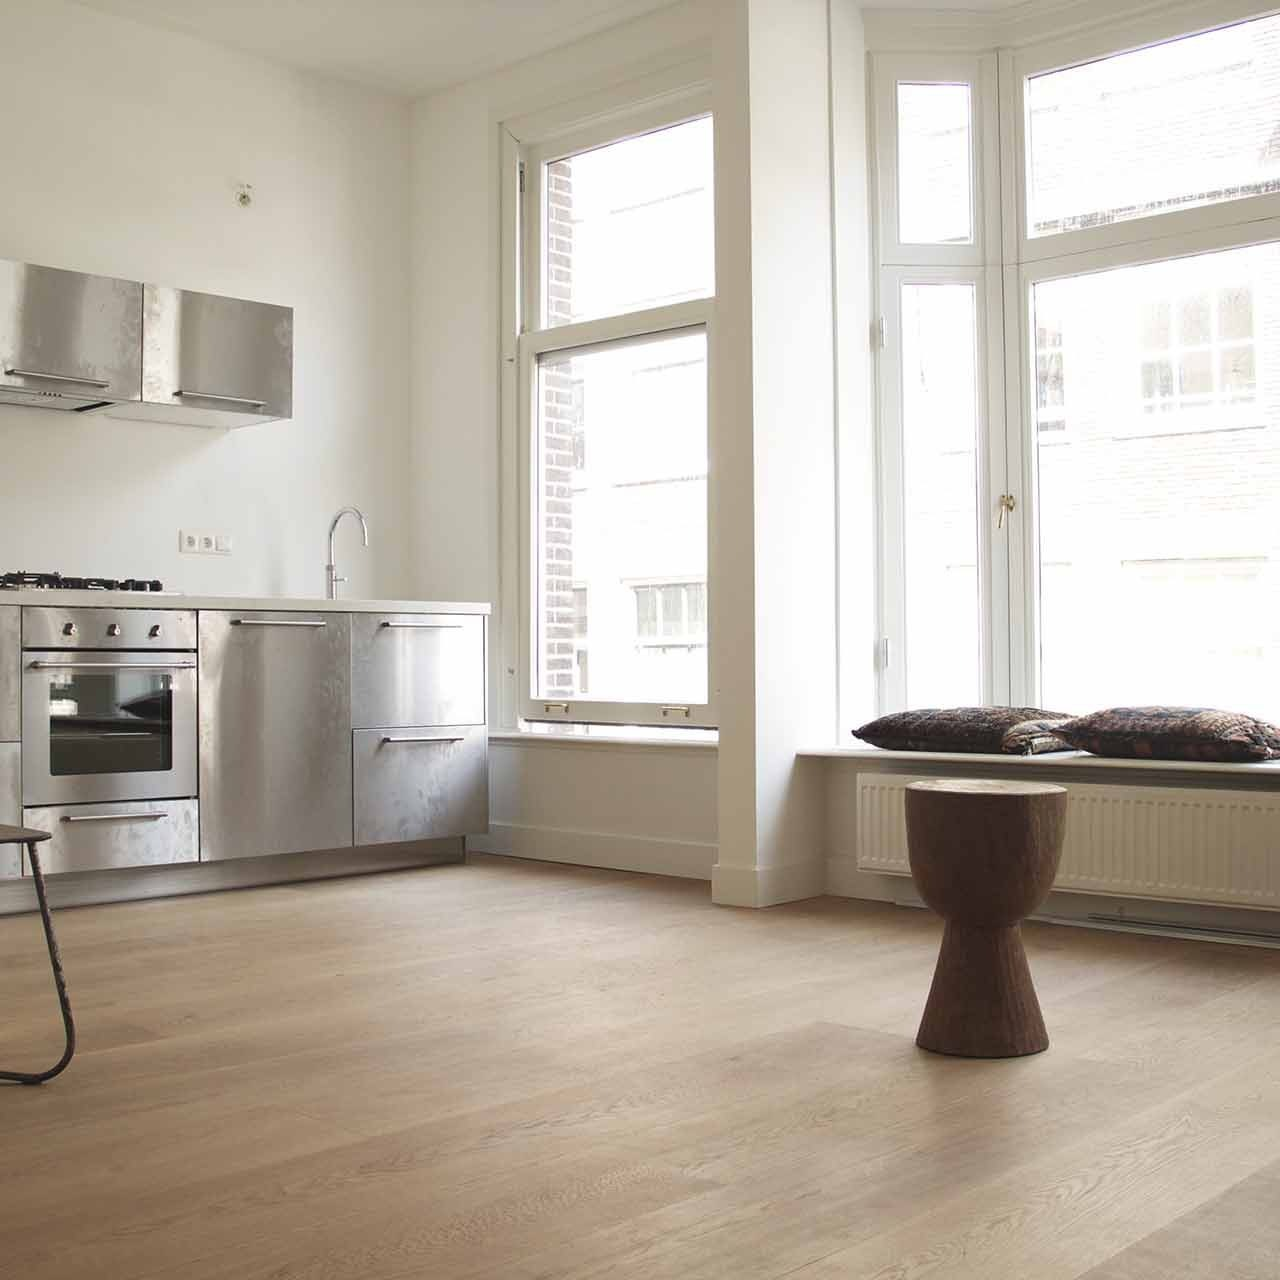 Verbouwing appartement Amsterdam